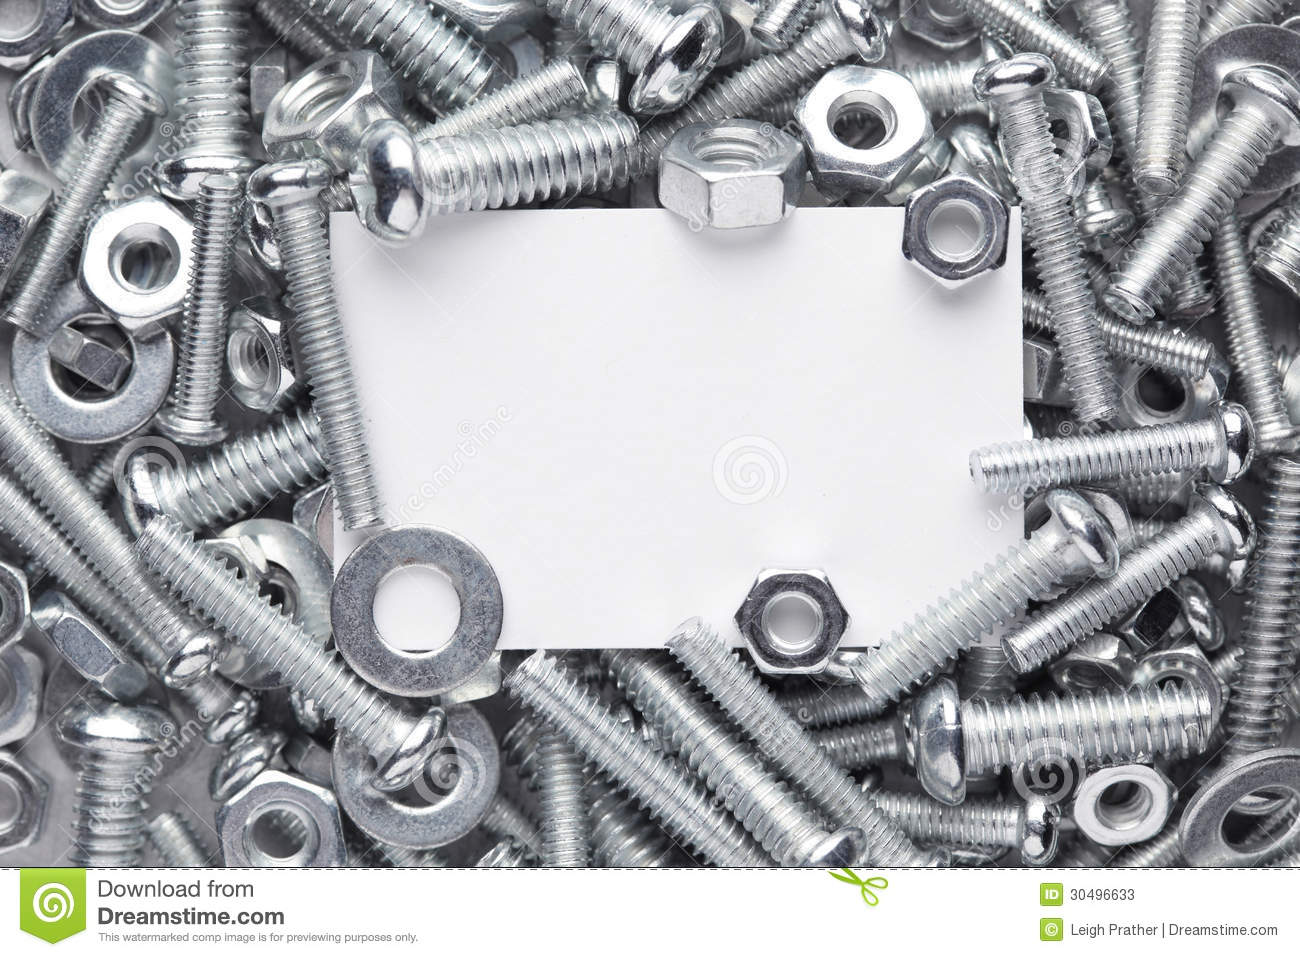 Nuts And Bolts Hardware >> Nuts And Bolts Frame Stock Photos - Image: 30496633